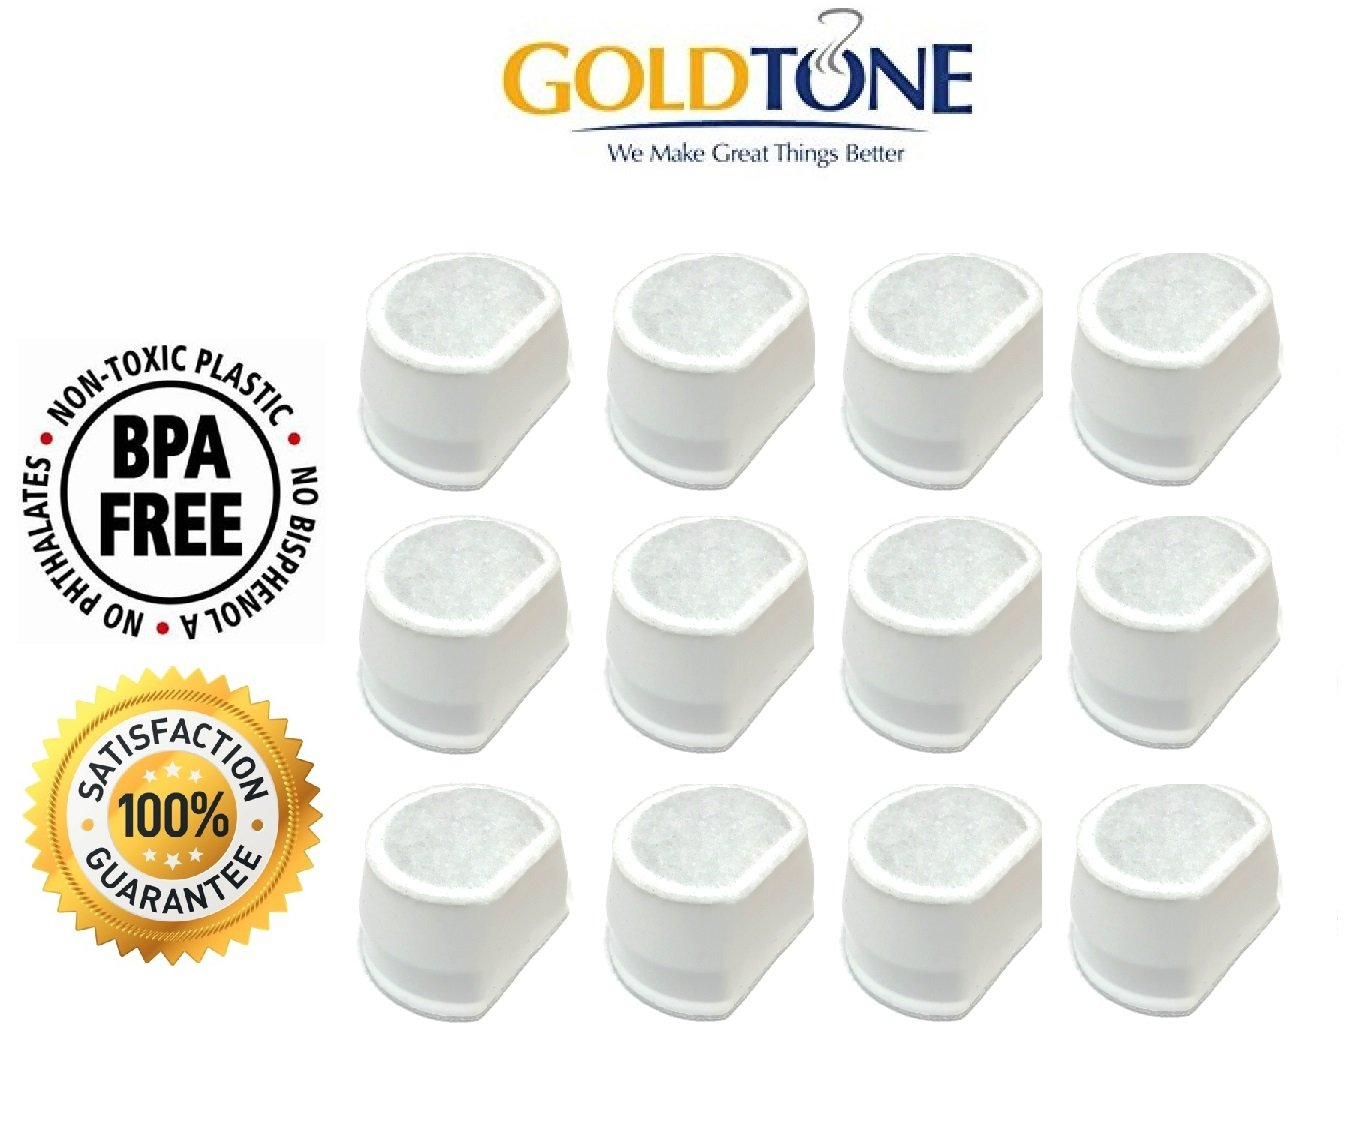 GoldTone Branded,12-pack, Replacement Pet Fountain Water Filters for Drinkwell Avalon, Drinkwell Pagoda & Drinkwell Sedona Pet Fountains, 12 Filters